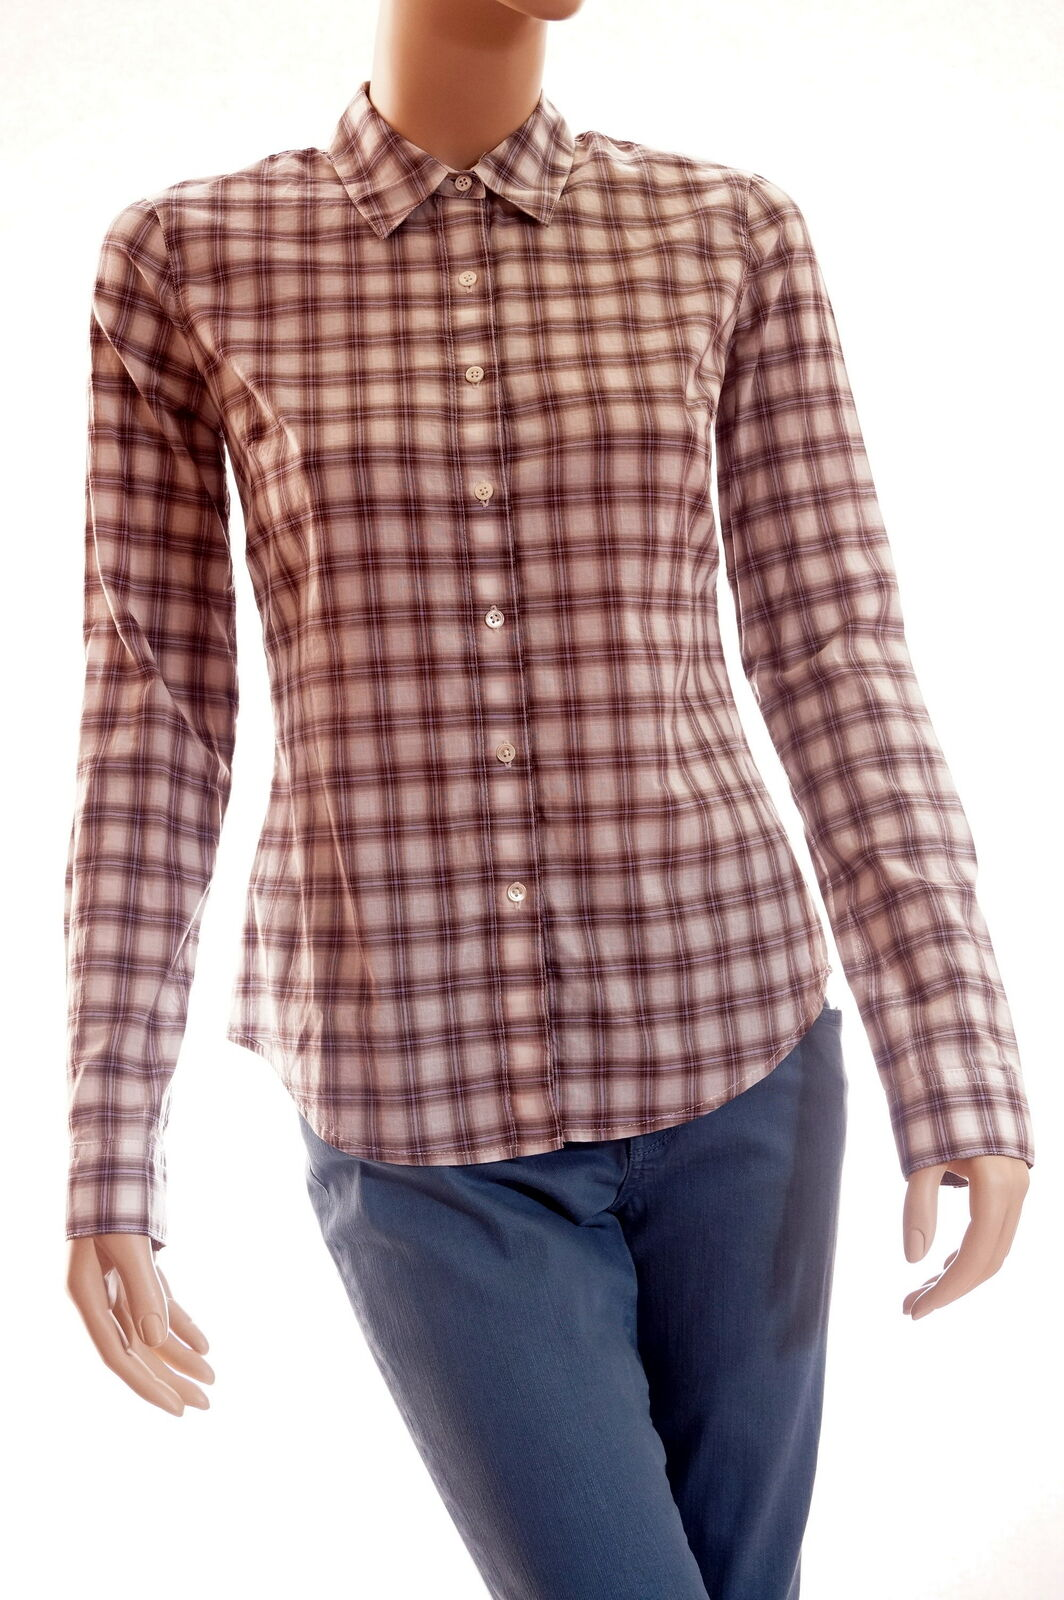 JAMES PERSE Womens Quarts Beige Brown Long Sleeve Plaid Button Down Shirt Top 2